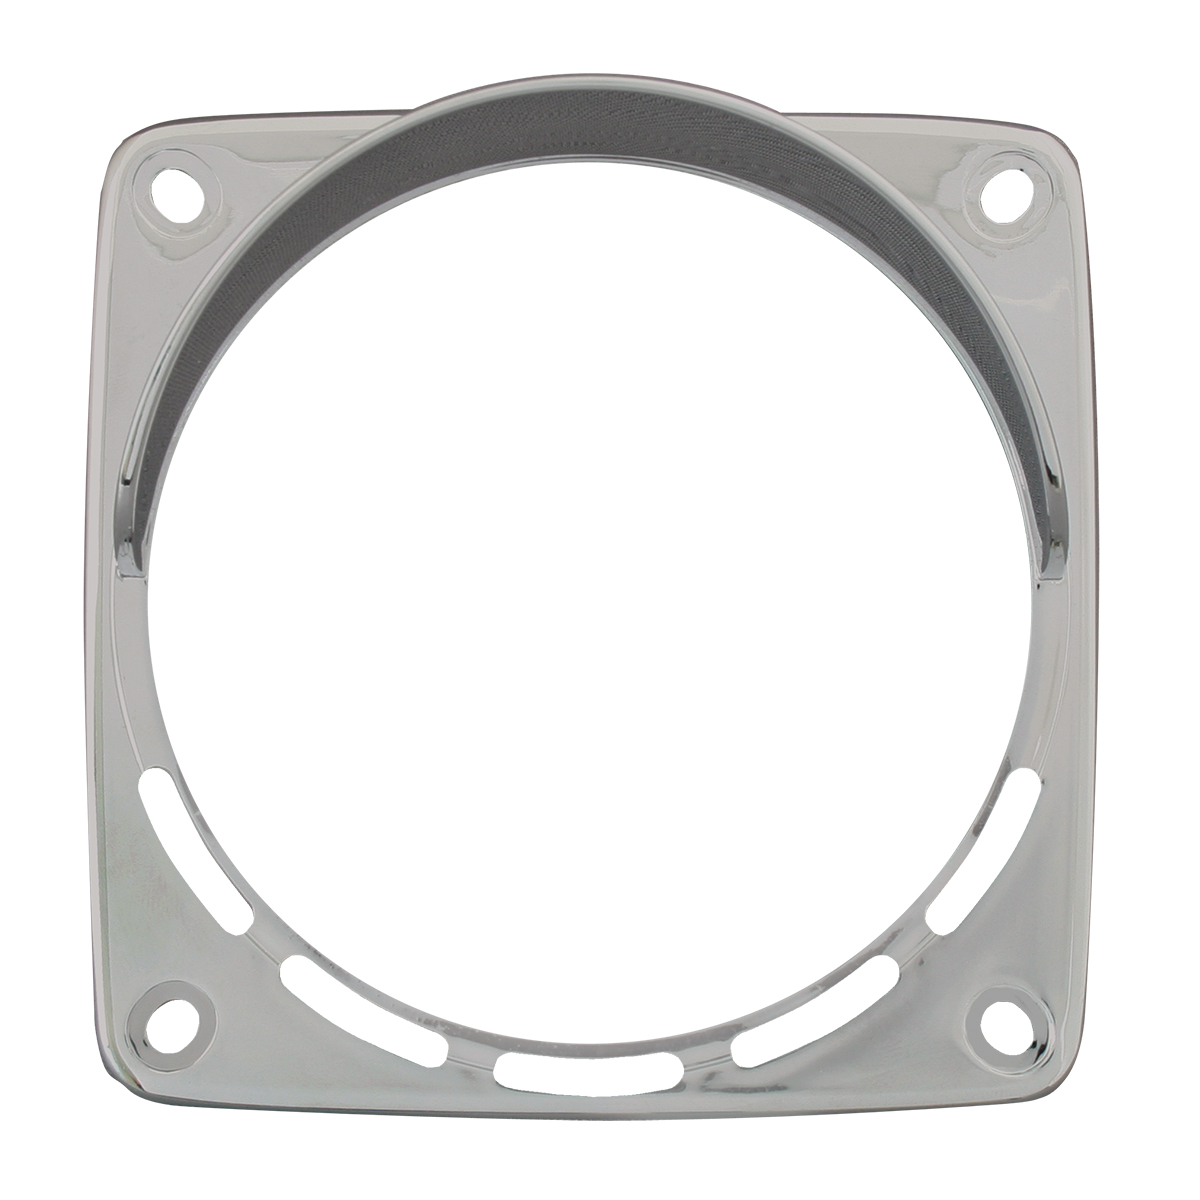 80358 Chrome Plastic Bezel with Visor for Square Double Face Pedestal Light